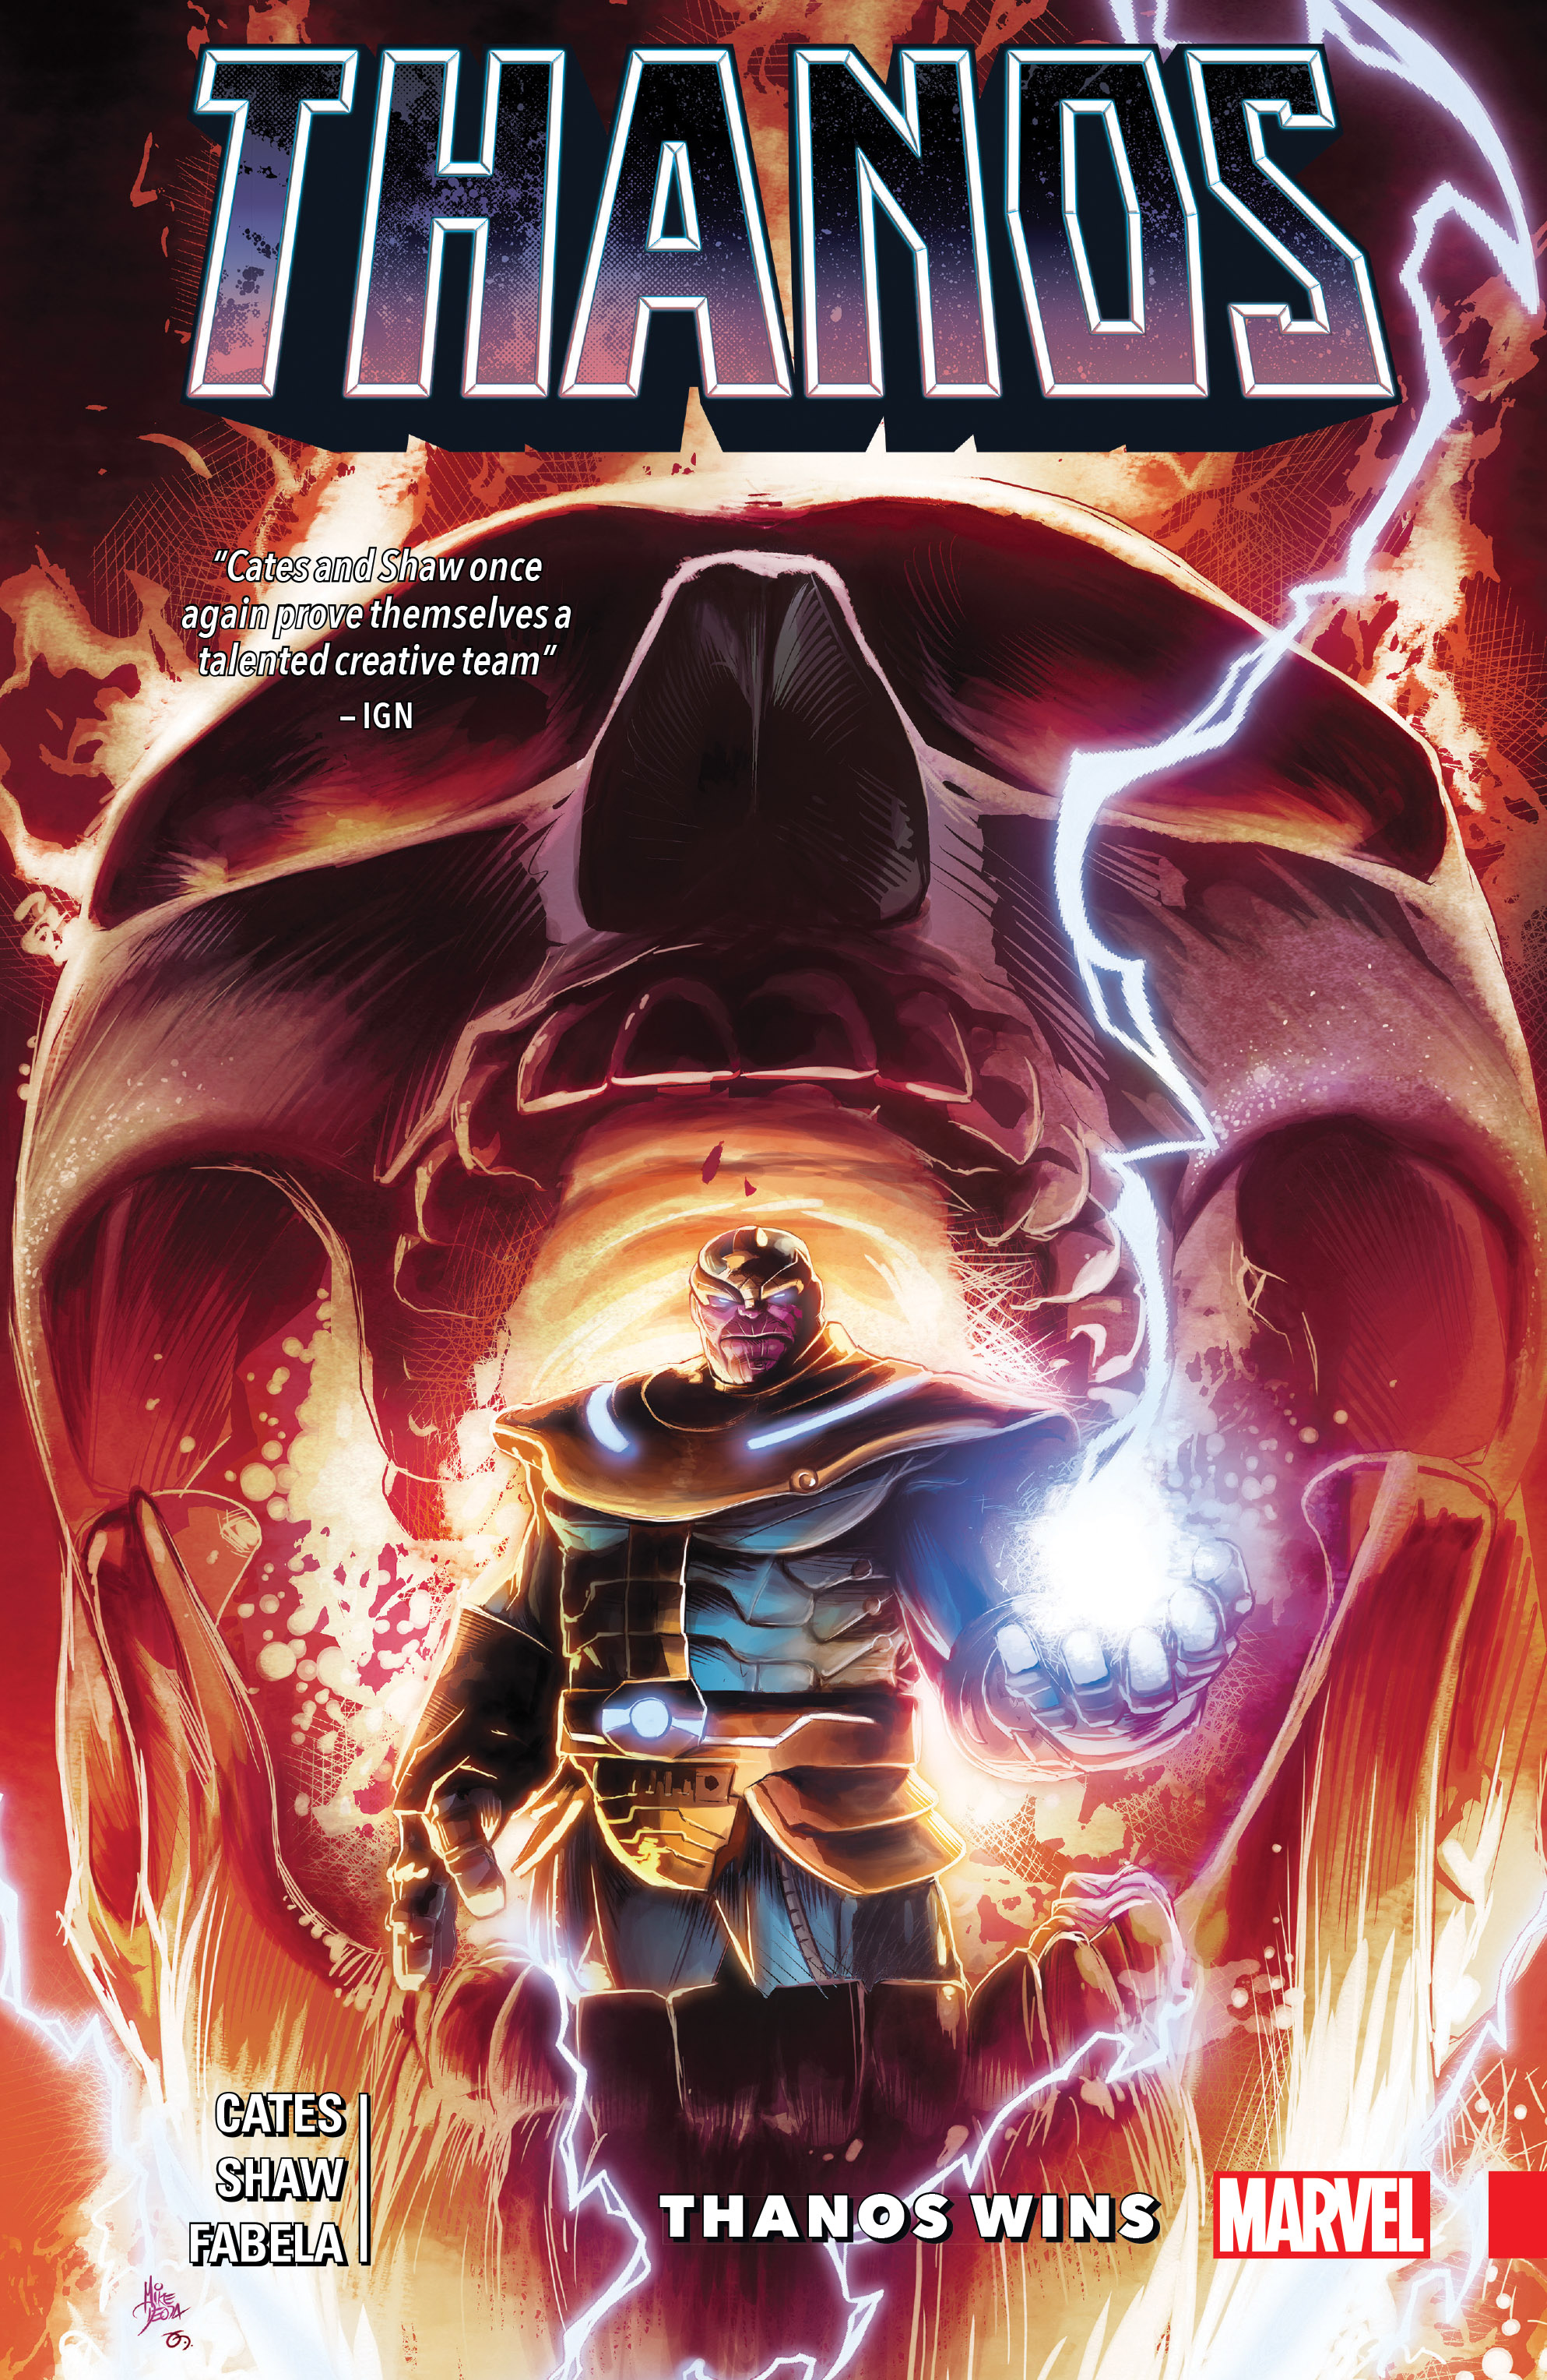 Thanos Wins By Donny Cates (Trade Paperback)